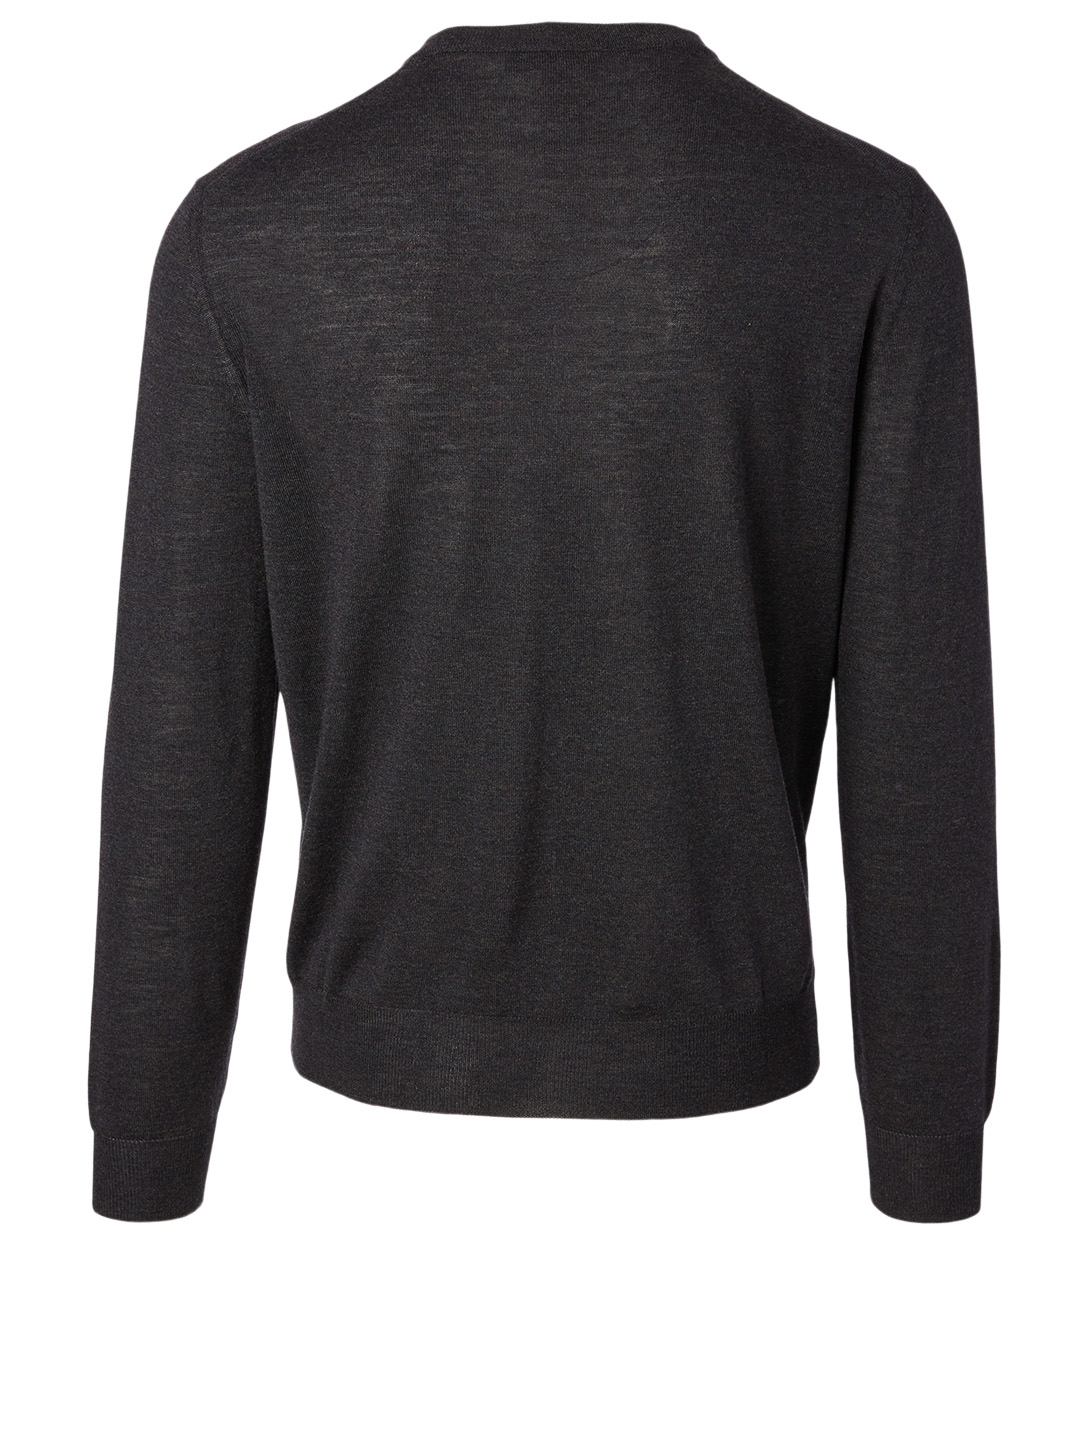 CANALI Wool V-Neck Sweater Men's Black